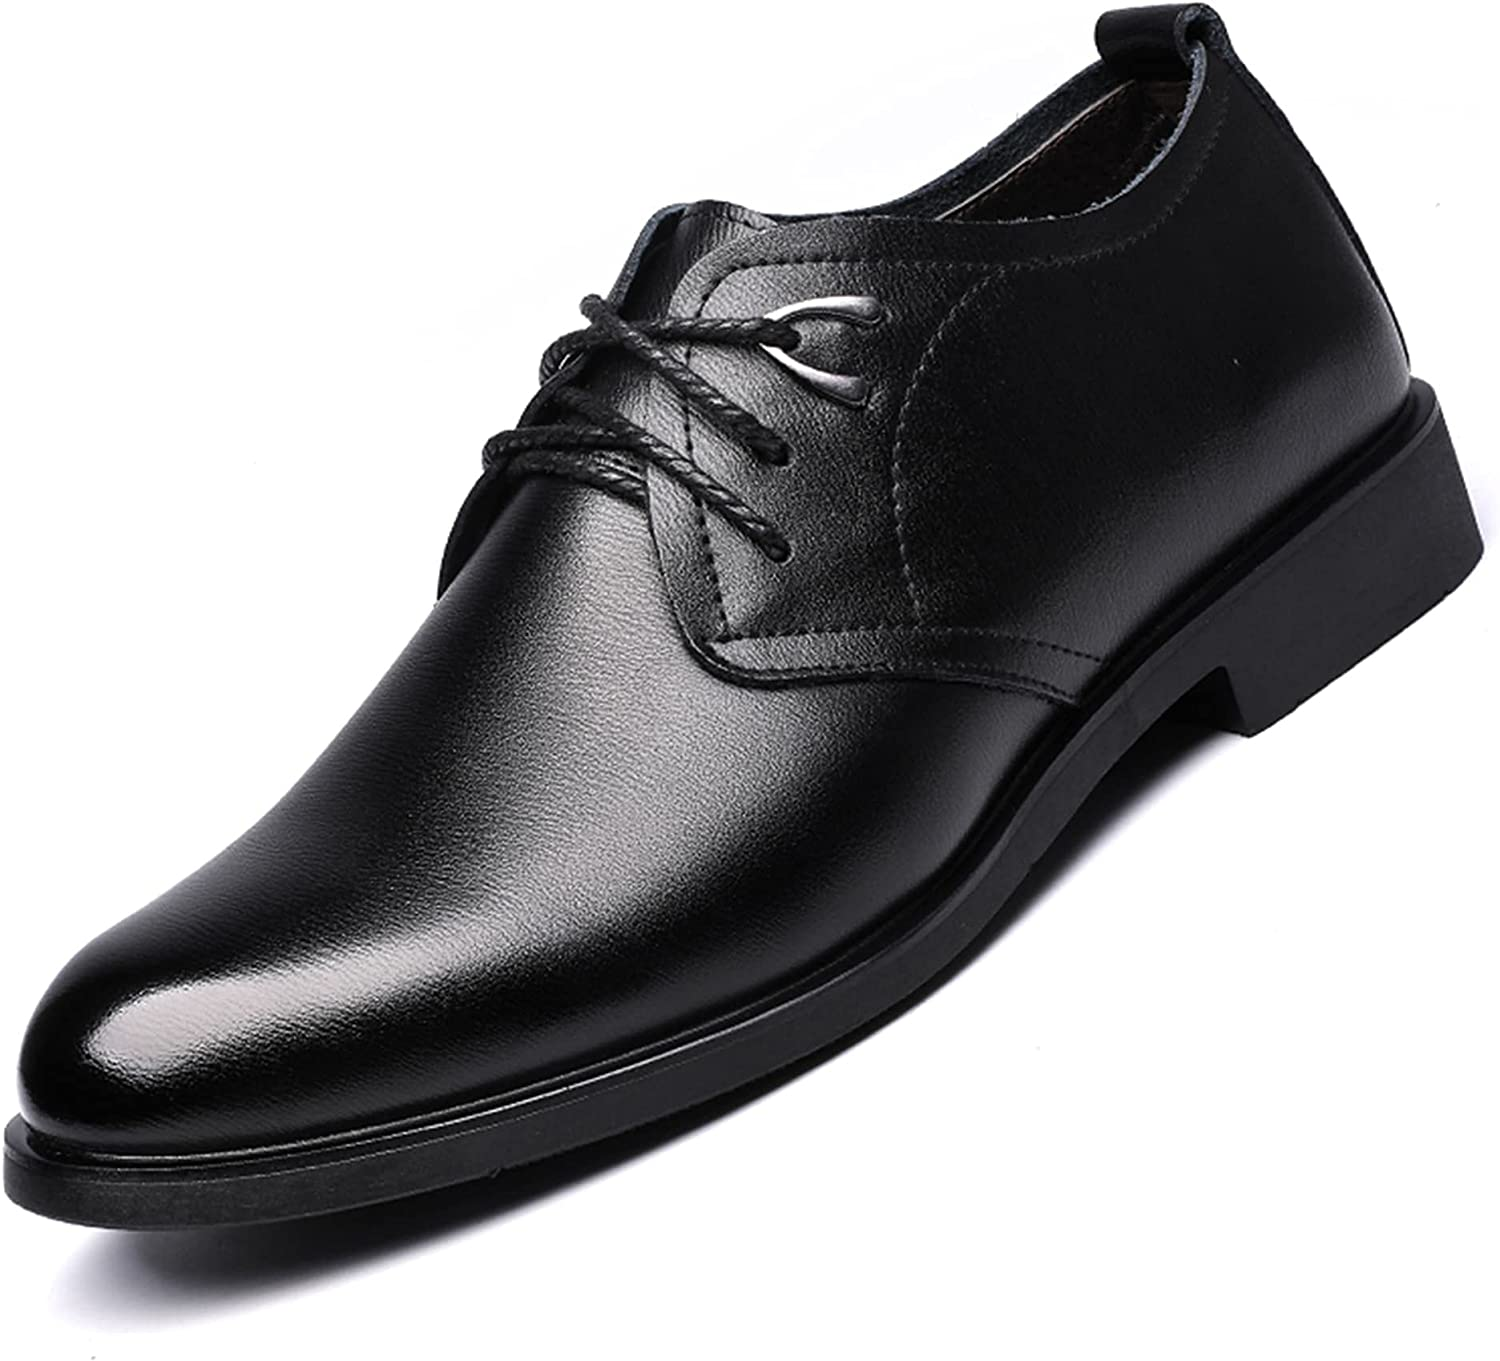 Men's Oxford Business Shoes Genuine Leather Lace-up Shoes Commuting Anti-Slip Breathable Dress Shoes